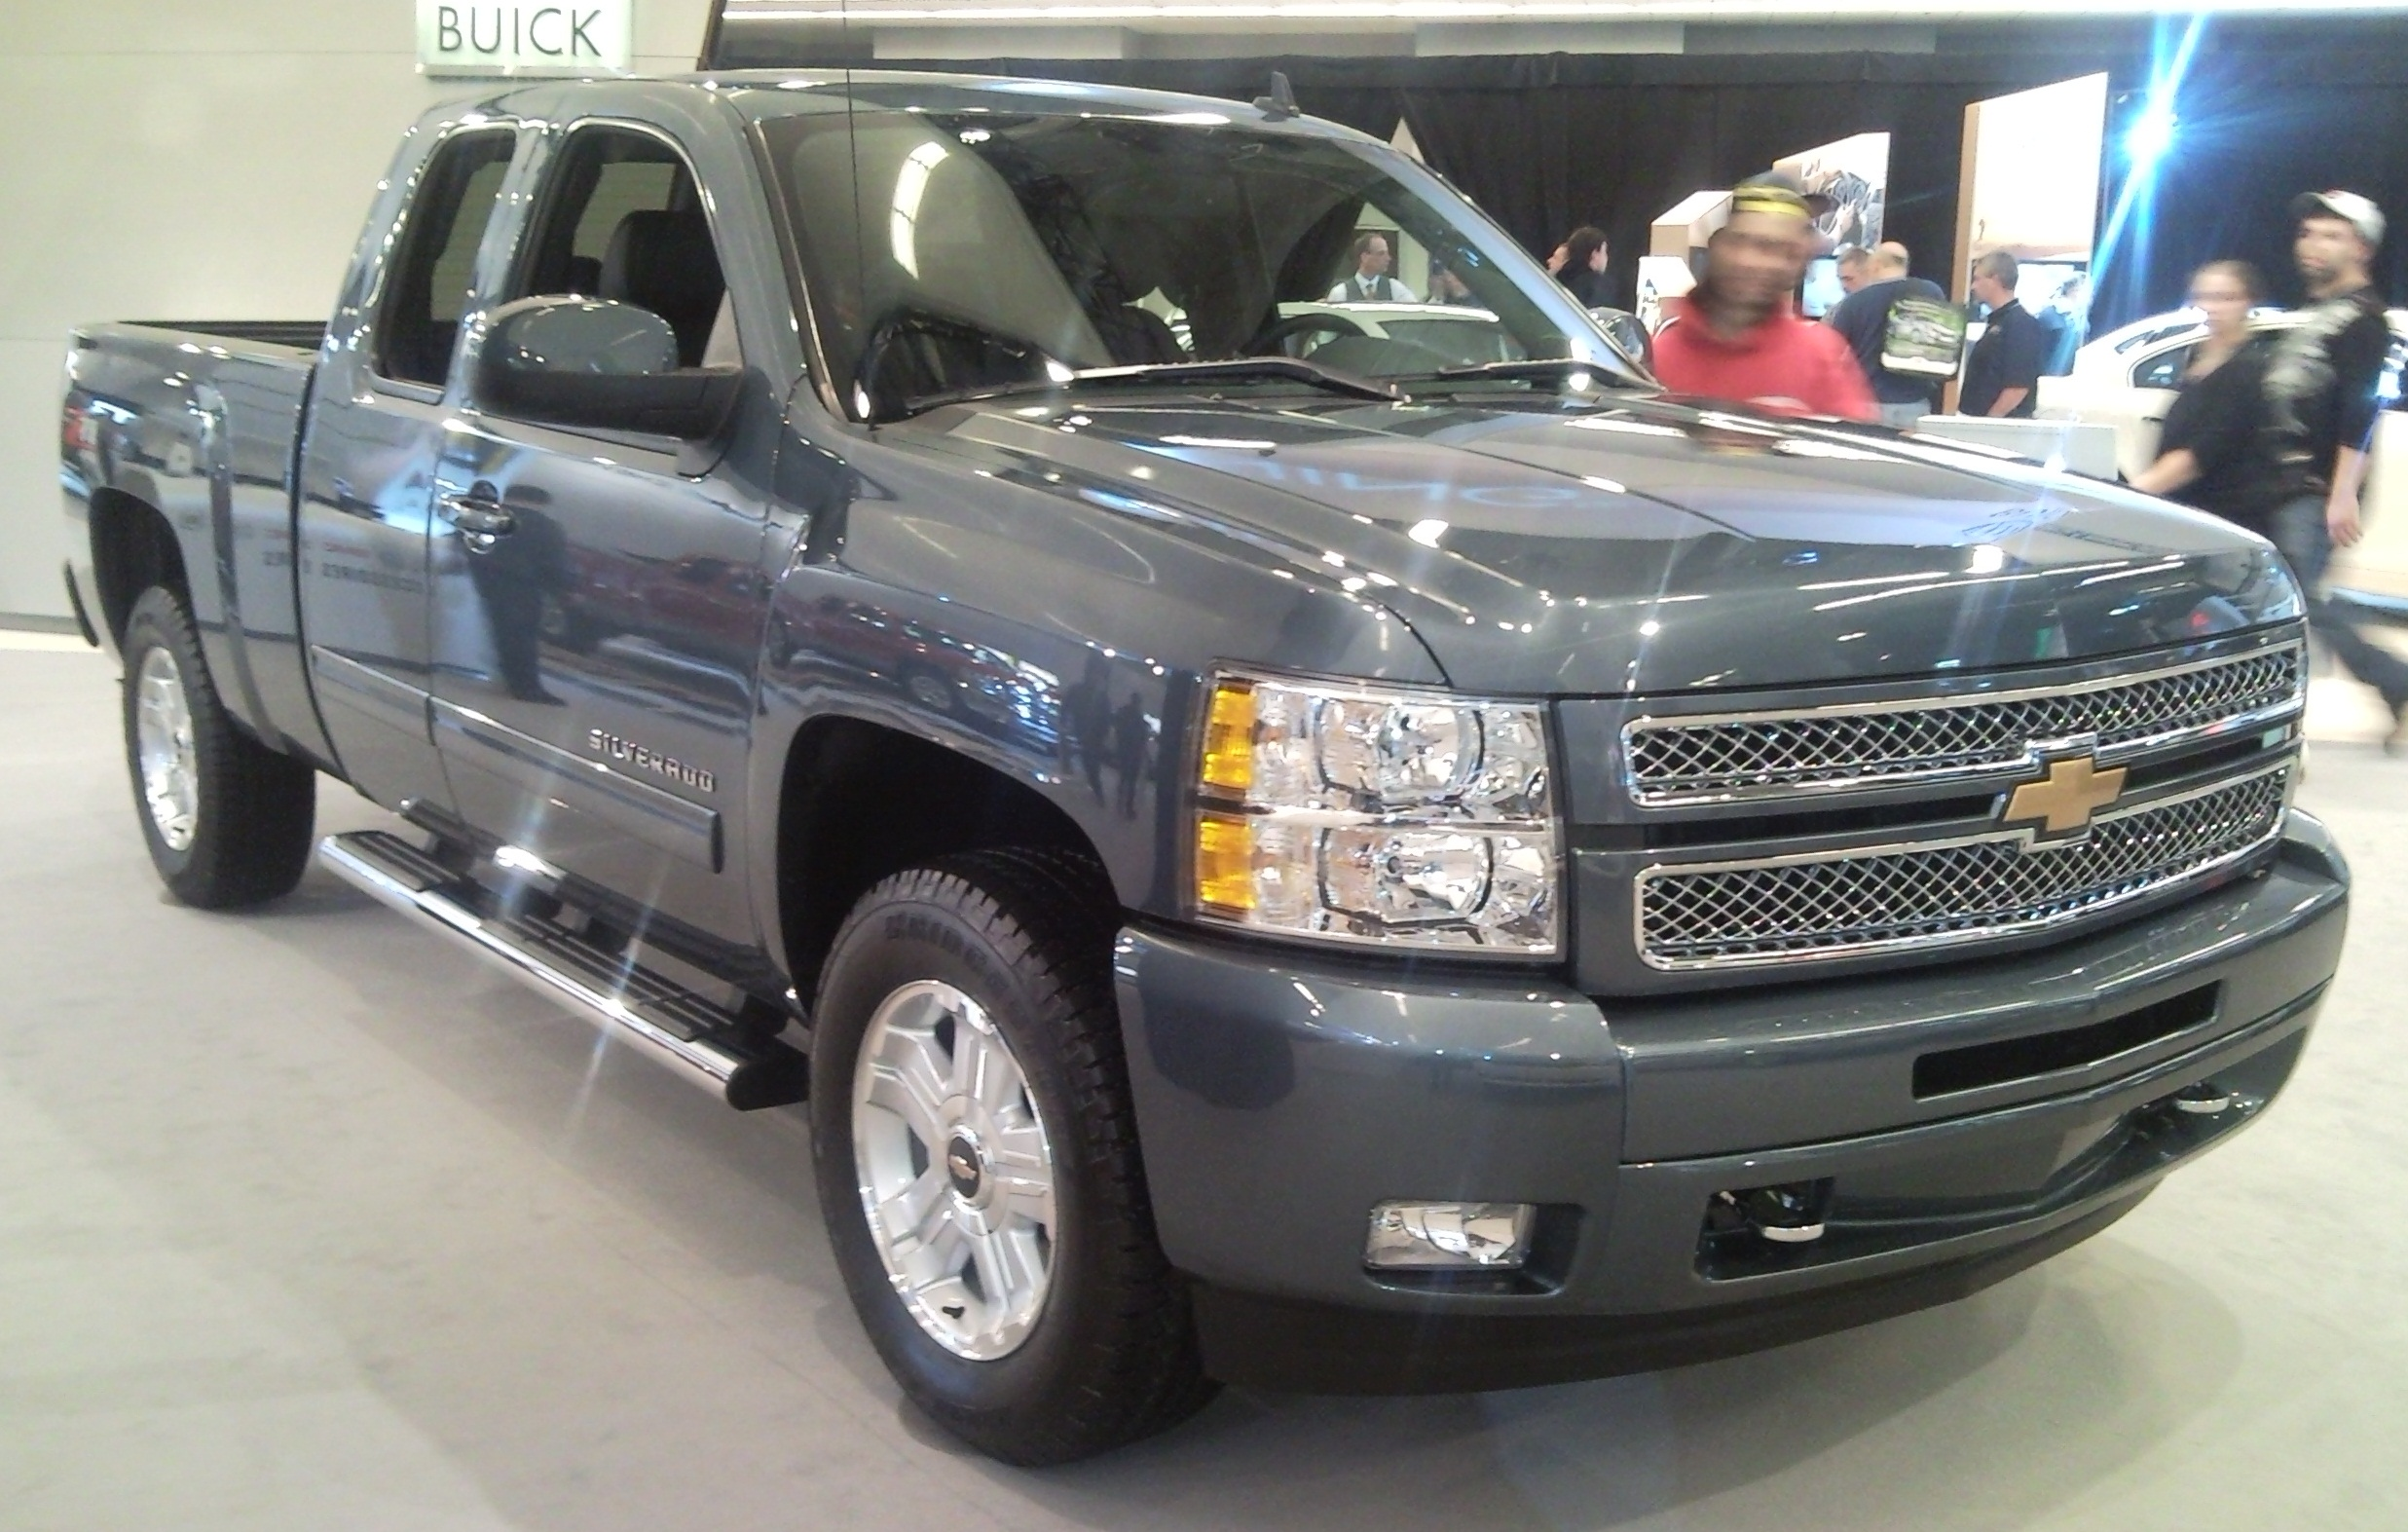 silverado chevrolet cars ext dallas image used for tx uploads lt waco l in import sale cargurus imgurl cab sb